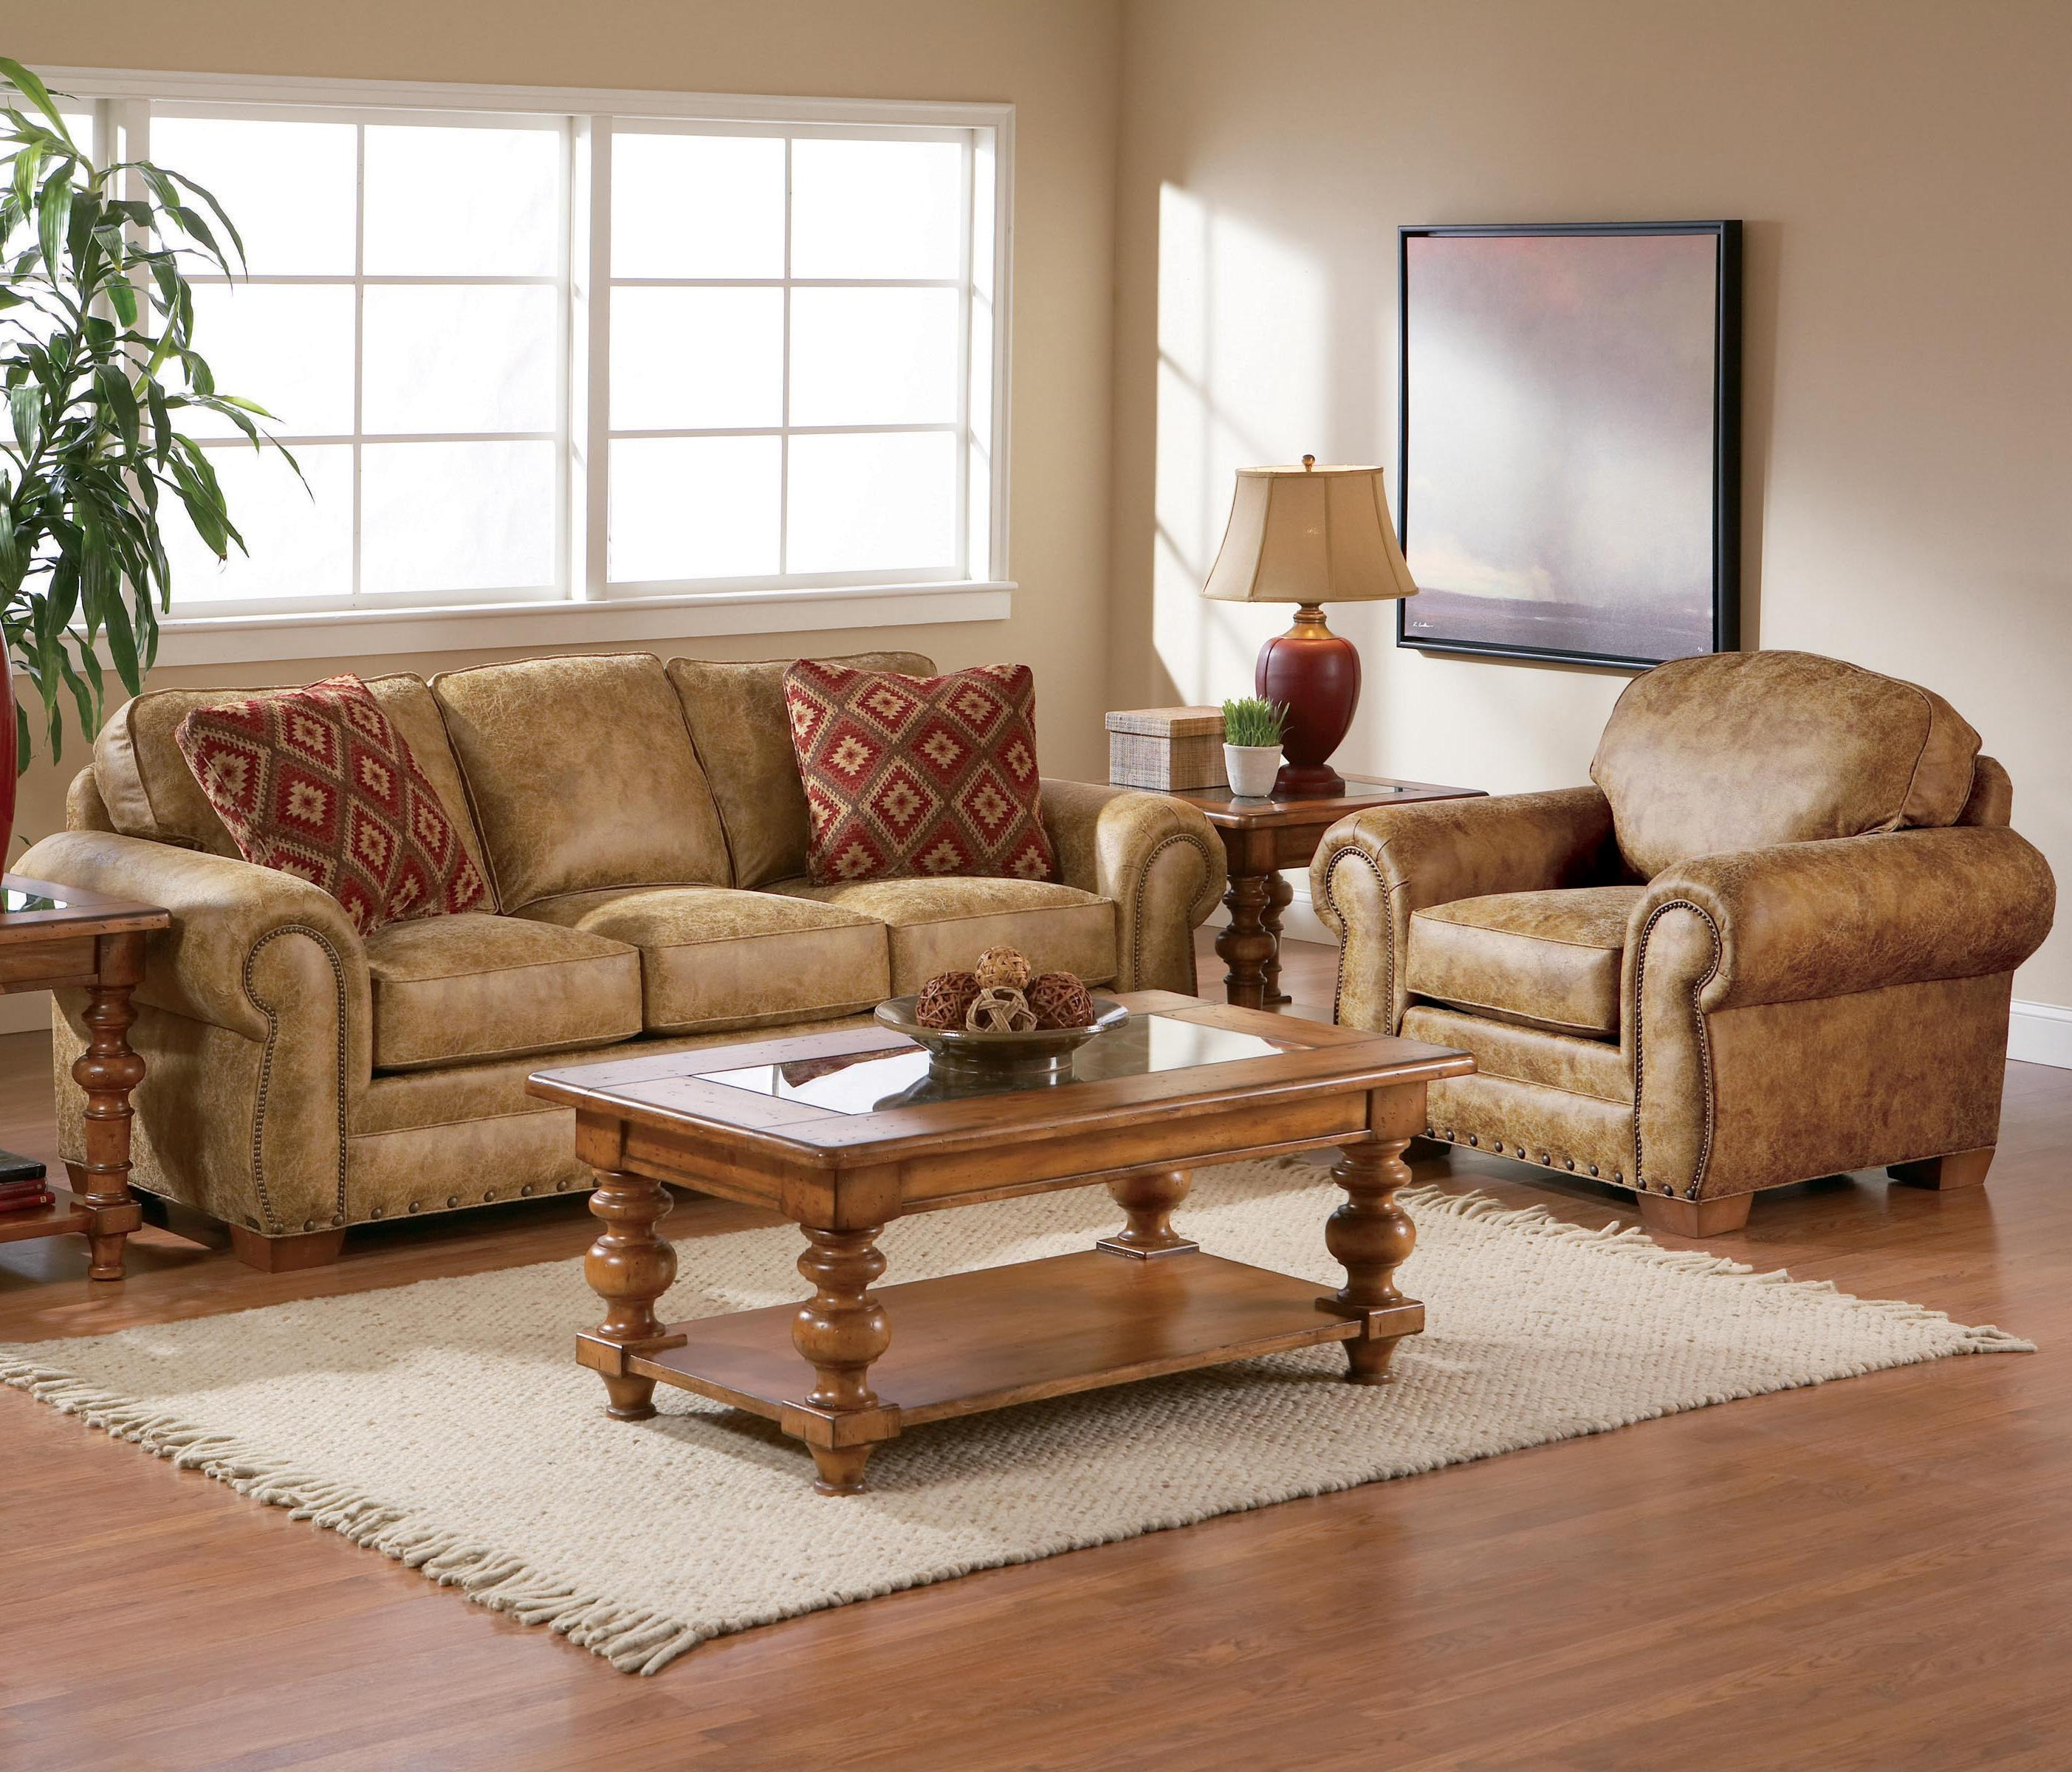 Broyhill Furniture Cambridge Stationary Living Room Group - Item Number: 5054 Living Room Group 1